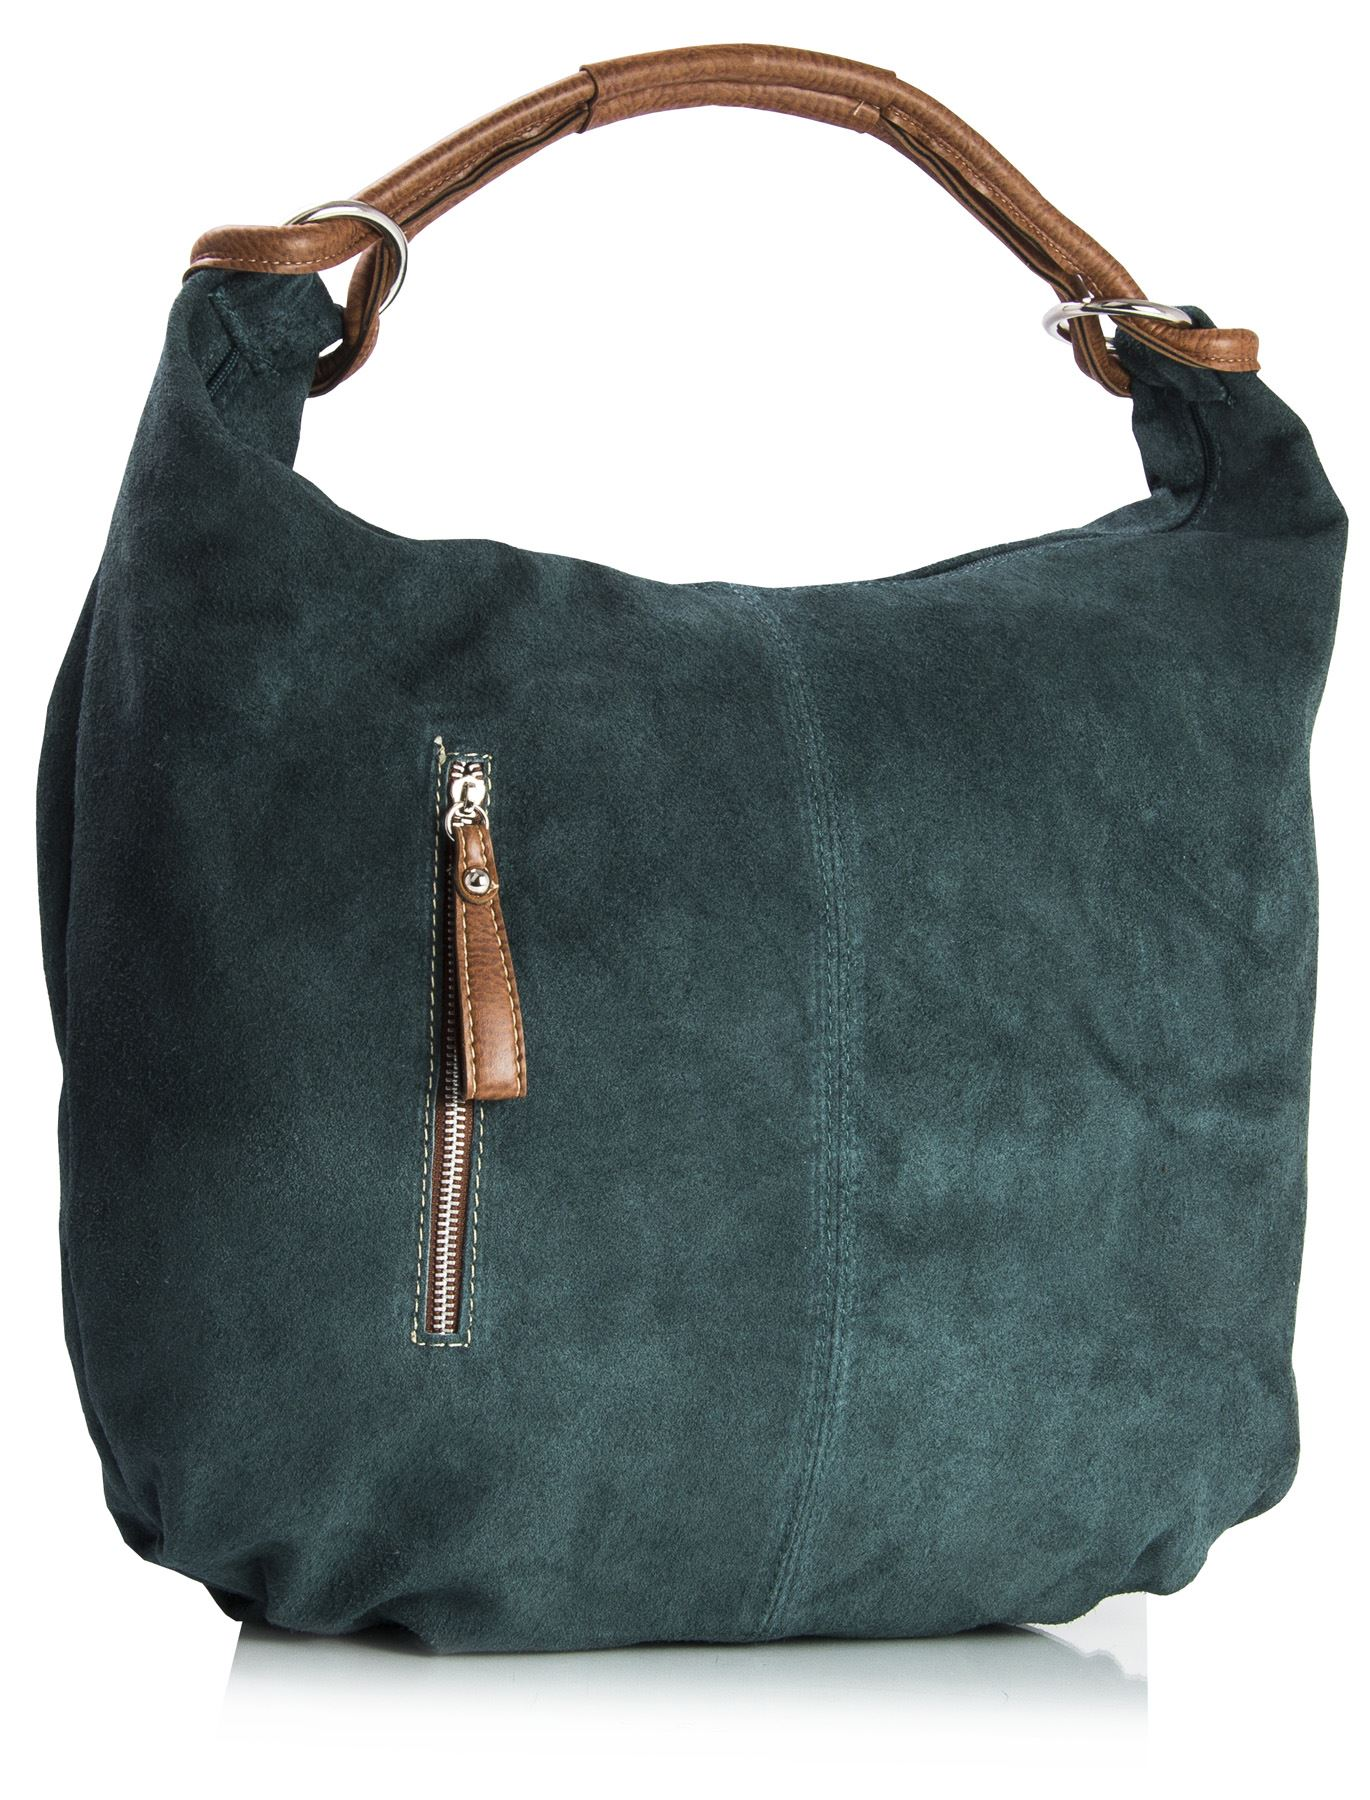 A large hobo with an attached chain shoulder strap and a leather top handle. The handles have been hand-stitched with a padded base. The GG Supreme canvas is crafted from a coated microfiber fabric with the GG motif.